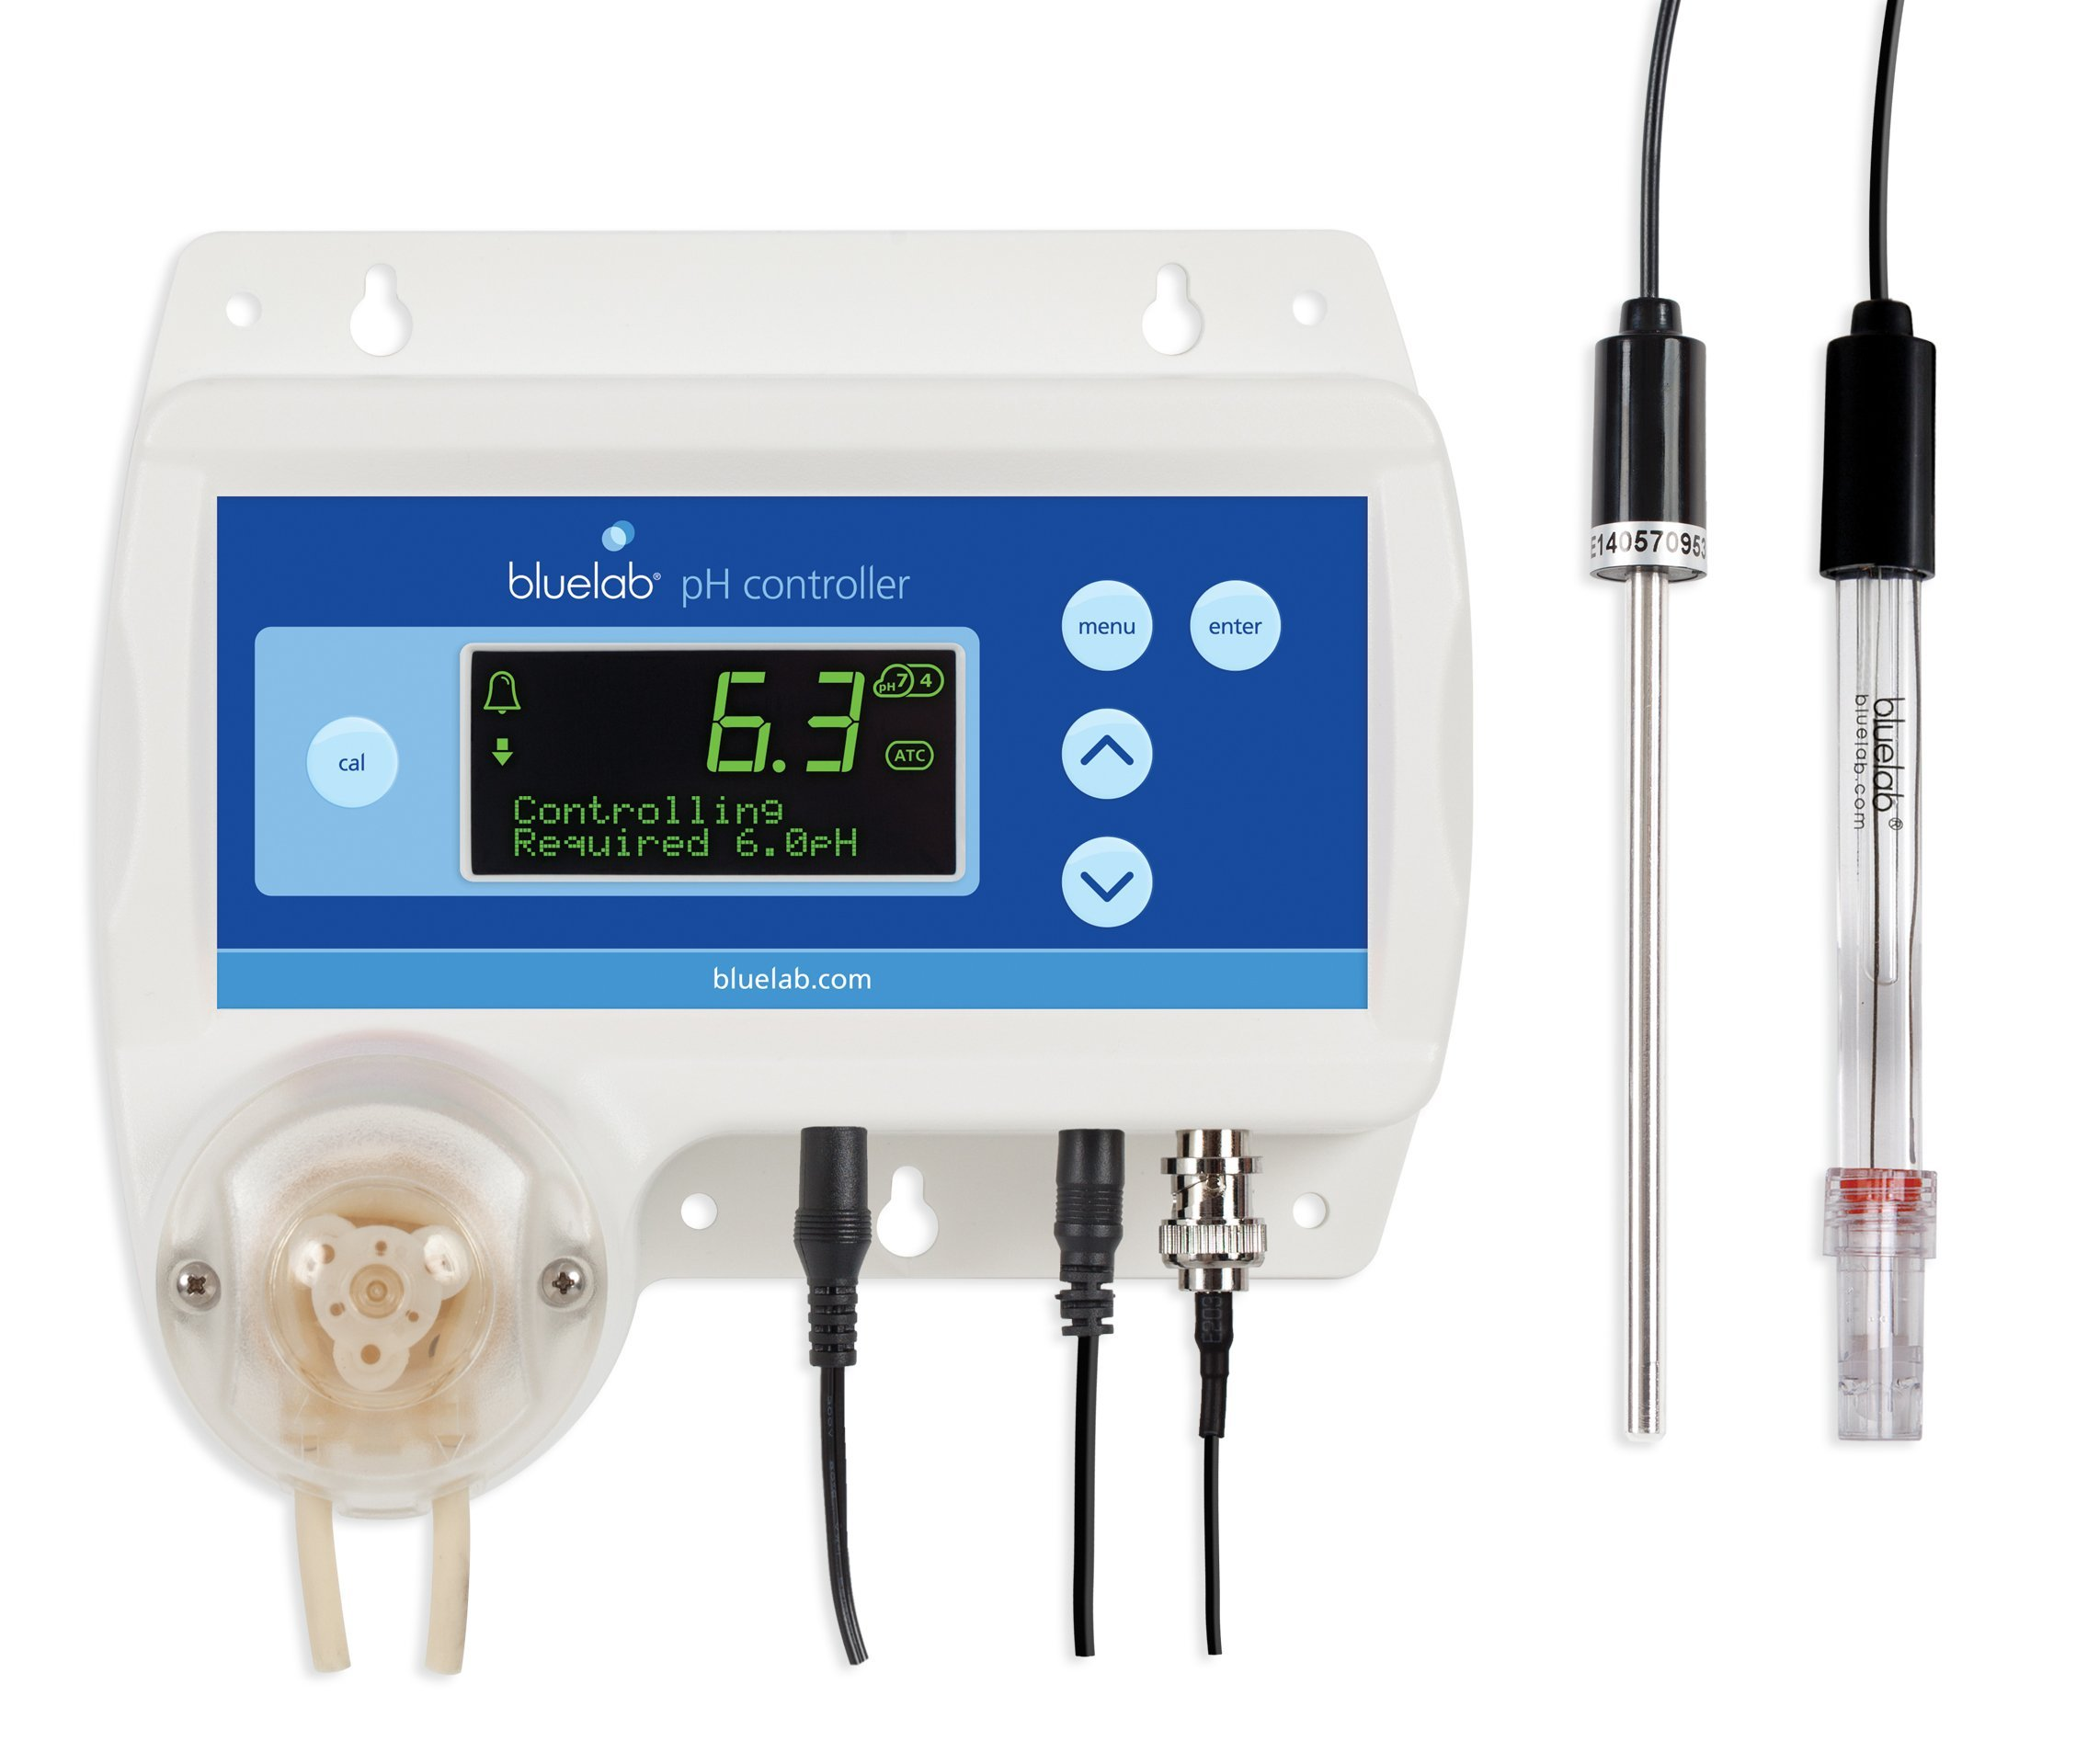 Bluelab pH Controller with Hands Free Monitoring and Dosing of Solution